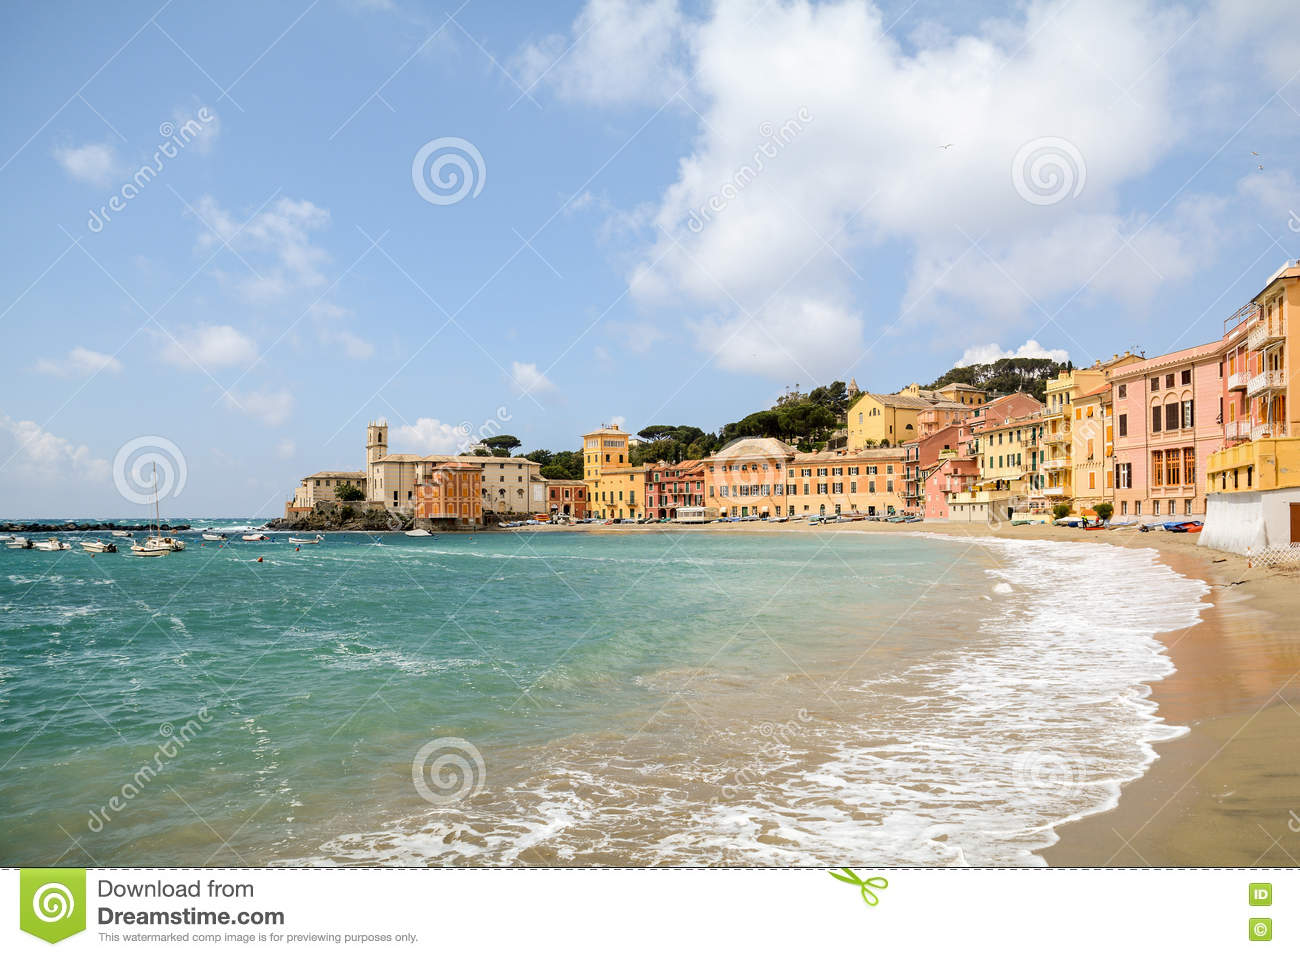 Sestri Levante Liguria Seaside With Old Town And Beach Baia Del Silenzio Bay Of Silence Italy Stock Photo Image Of French Holiday 72624654